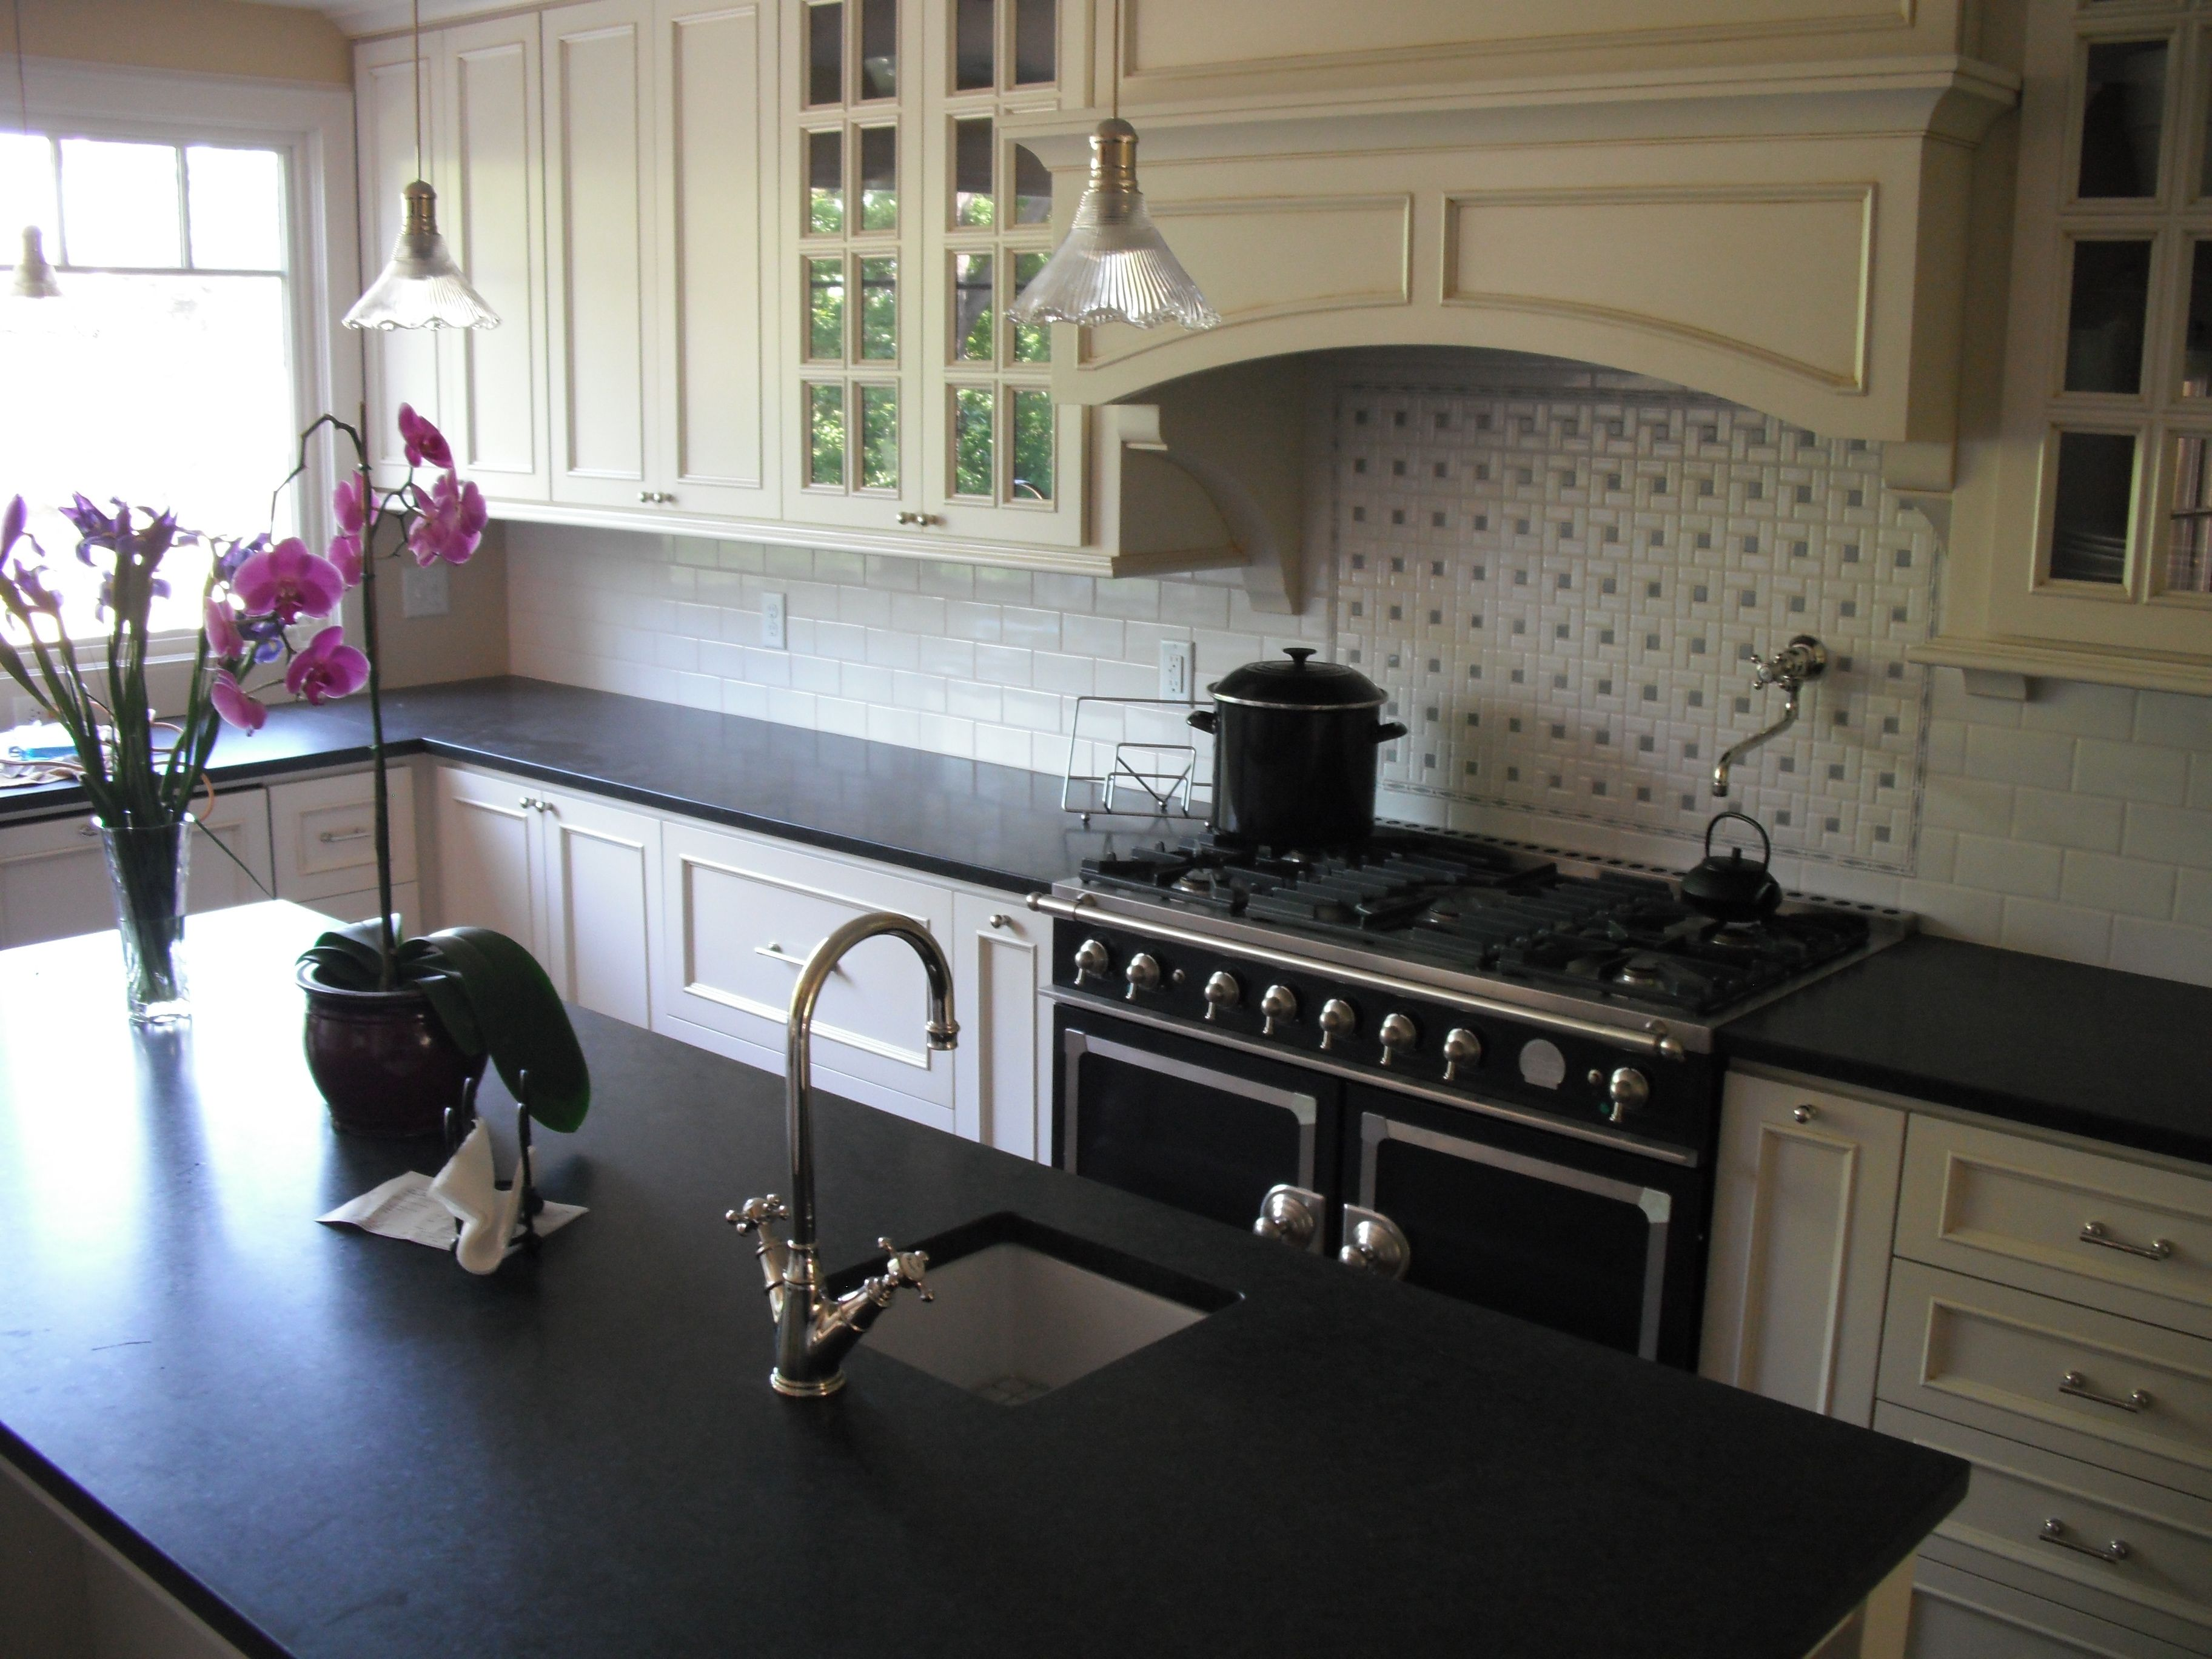 Honed Quartz Countertops Honed Granite Countertops Honed Quartz Countertop Honed